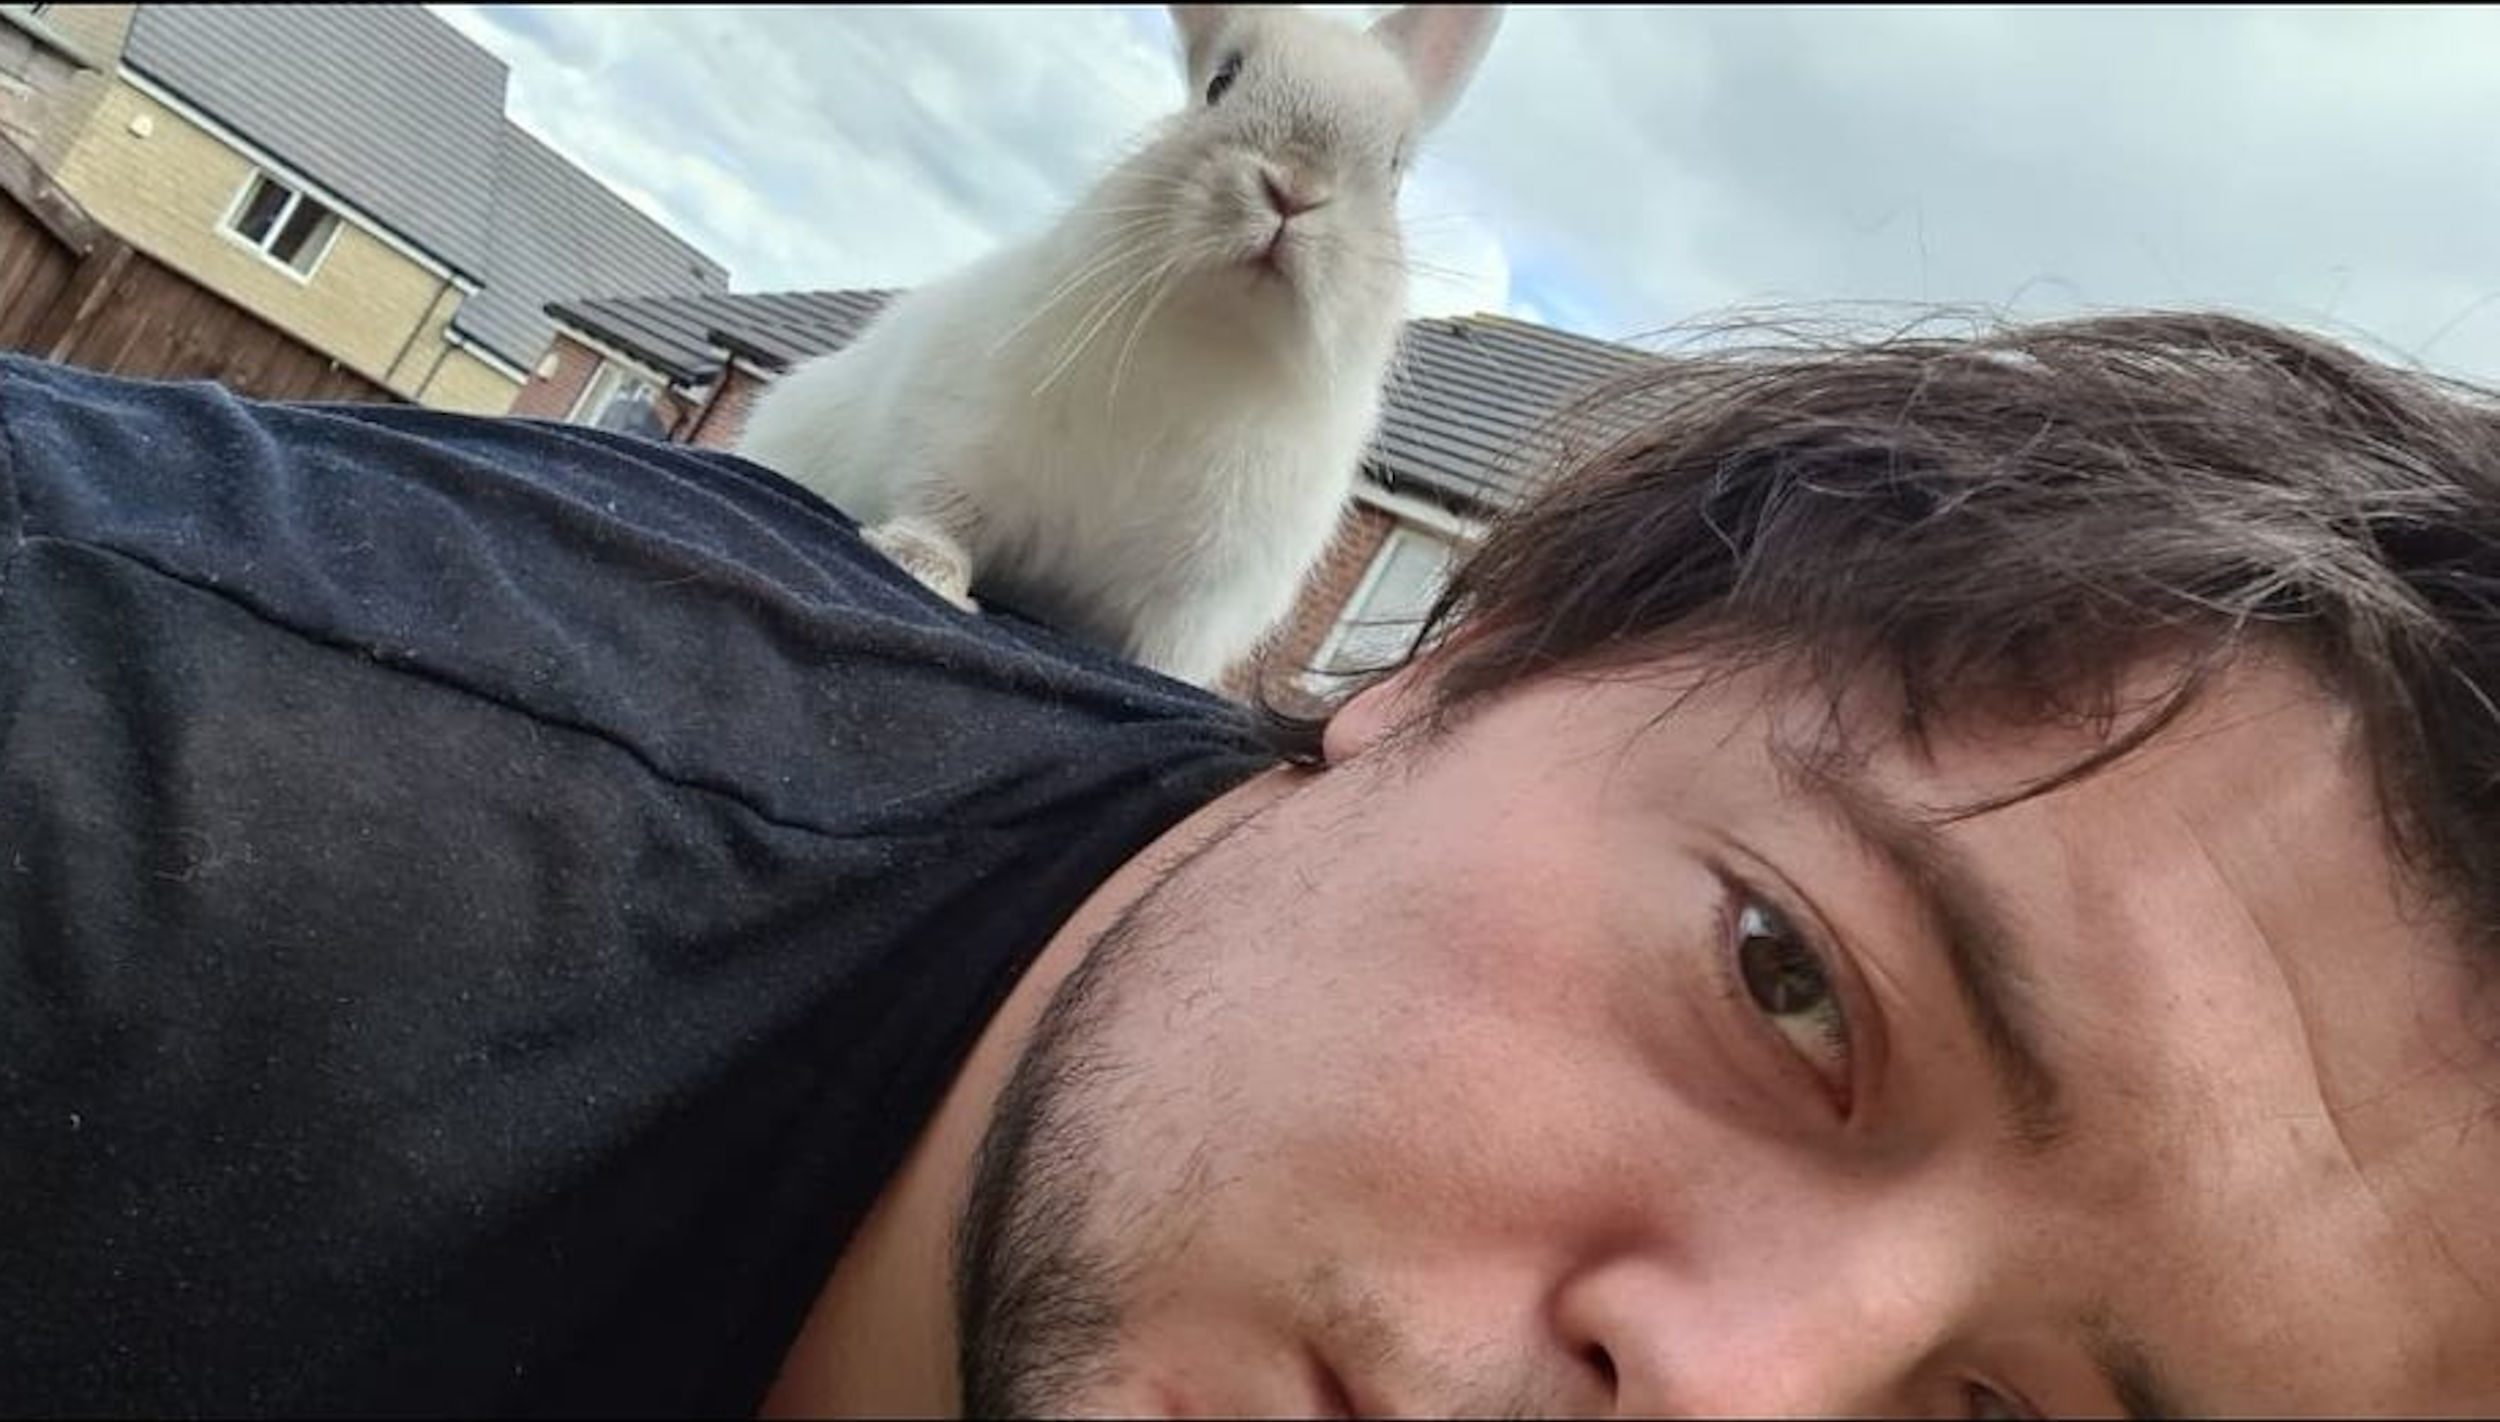 A picture of a man and a rabbit - Consumer News UK